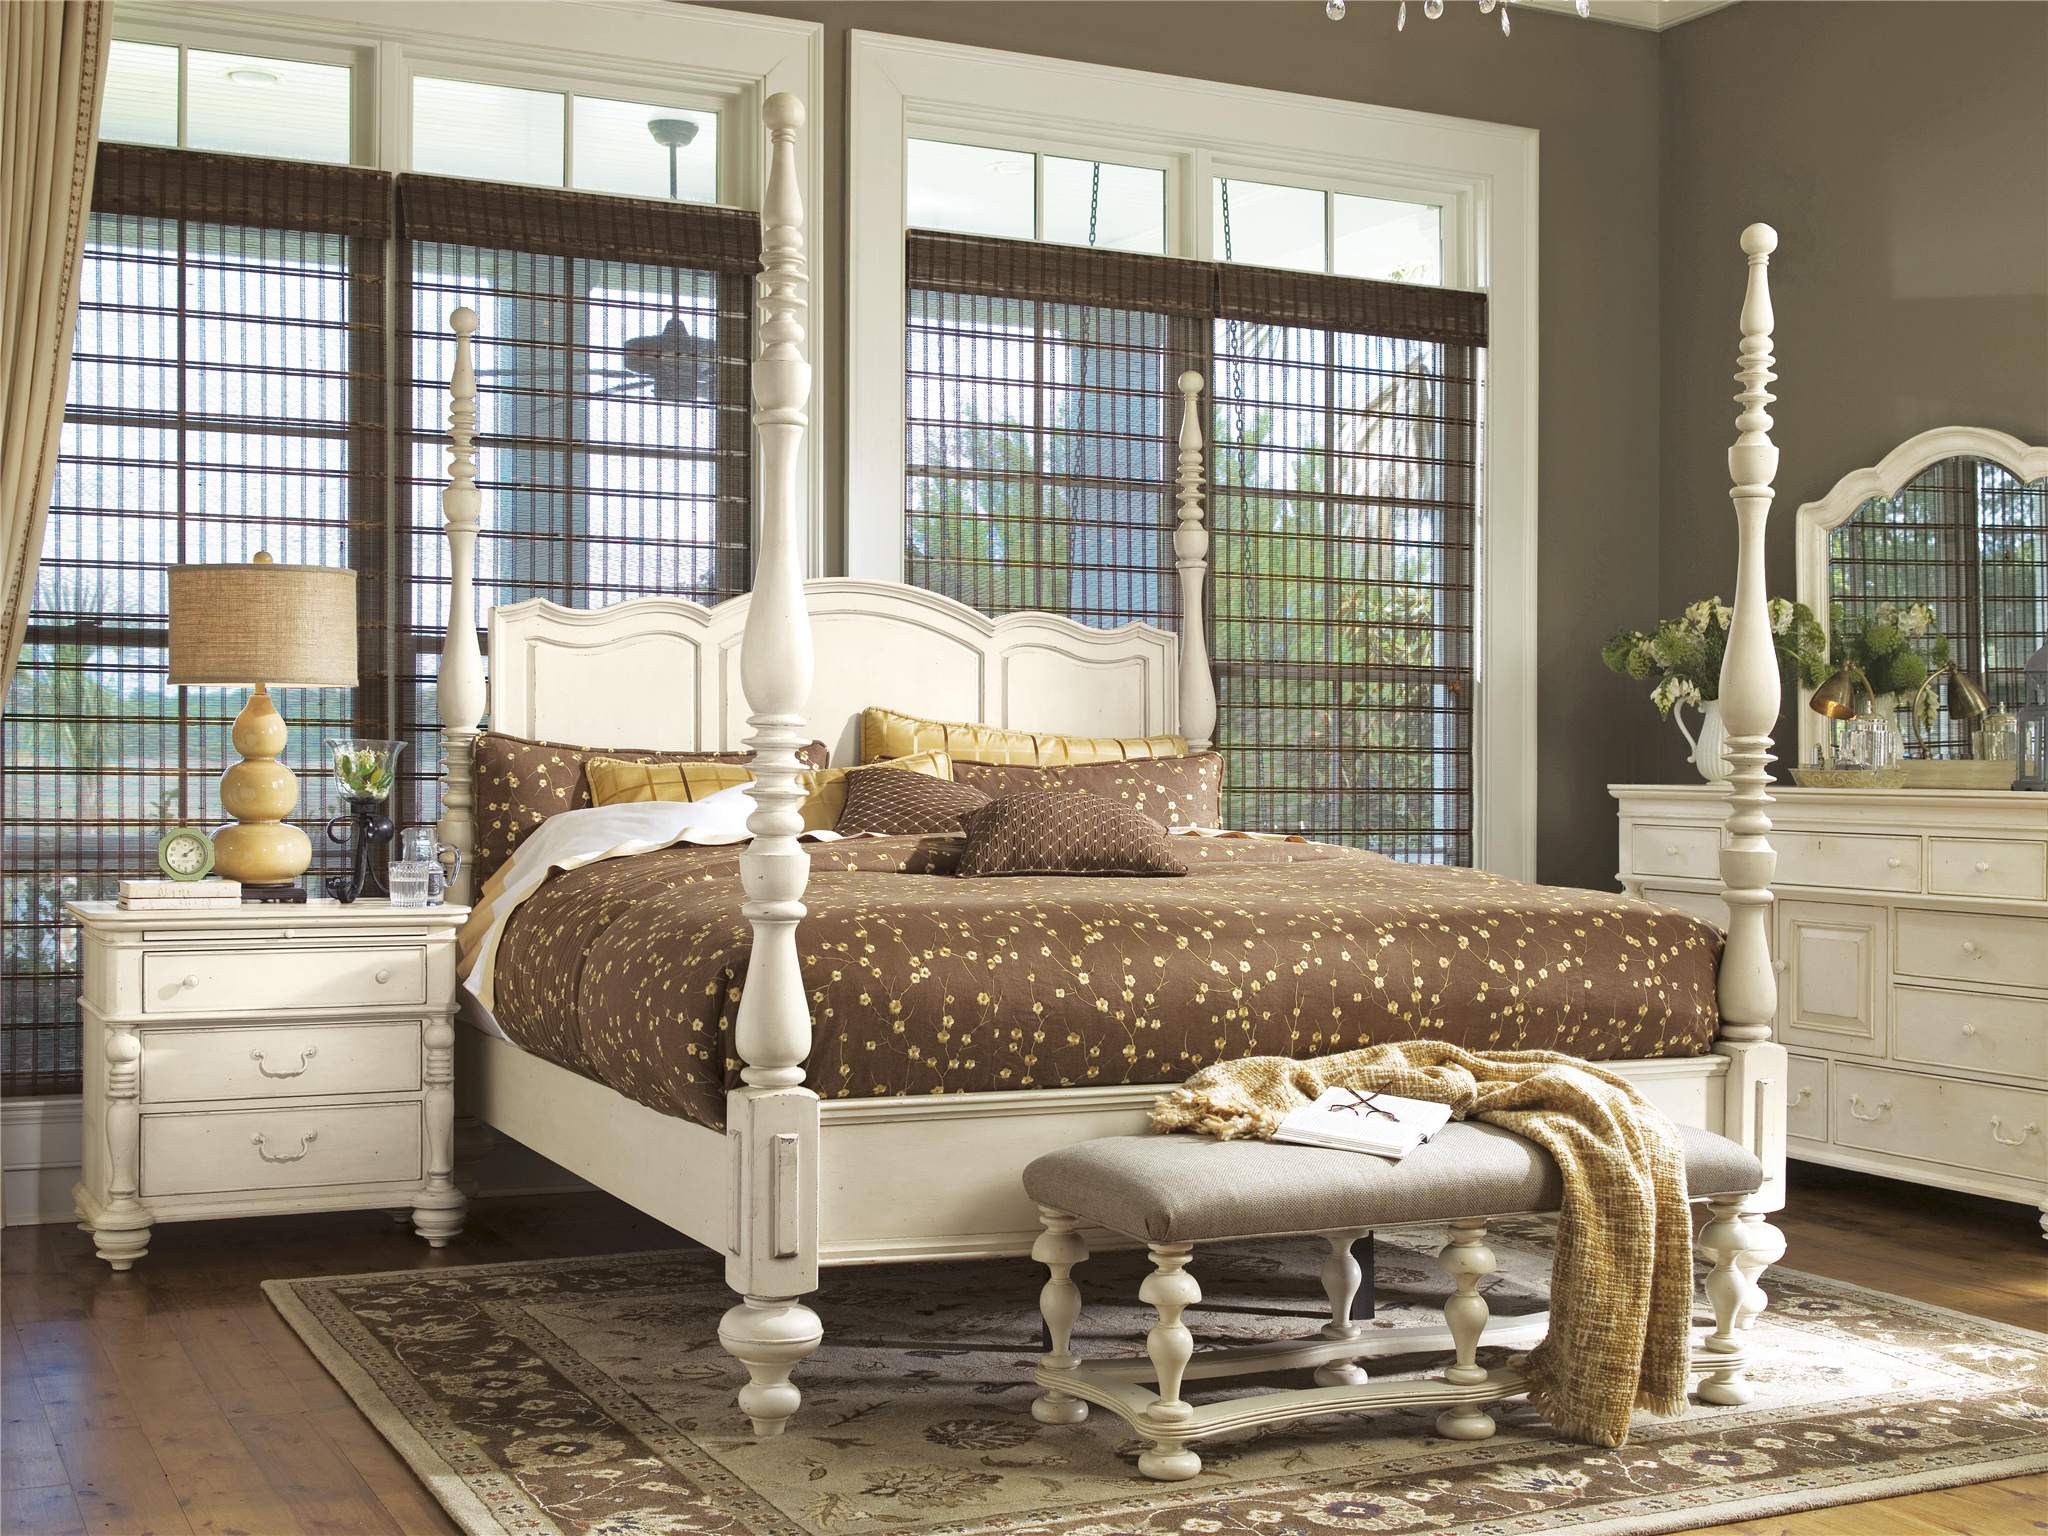 Paula Deen Bedroom Furniture Collection Steel Magnolia Universal Furniture Paula Deen Home Savannah Poster Bed Queen